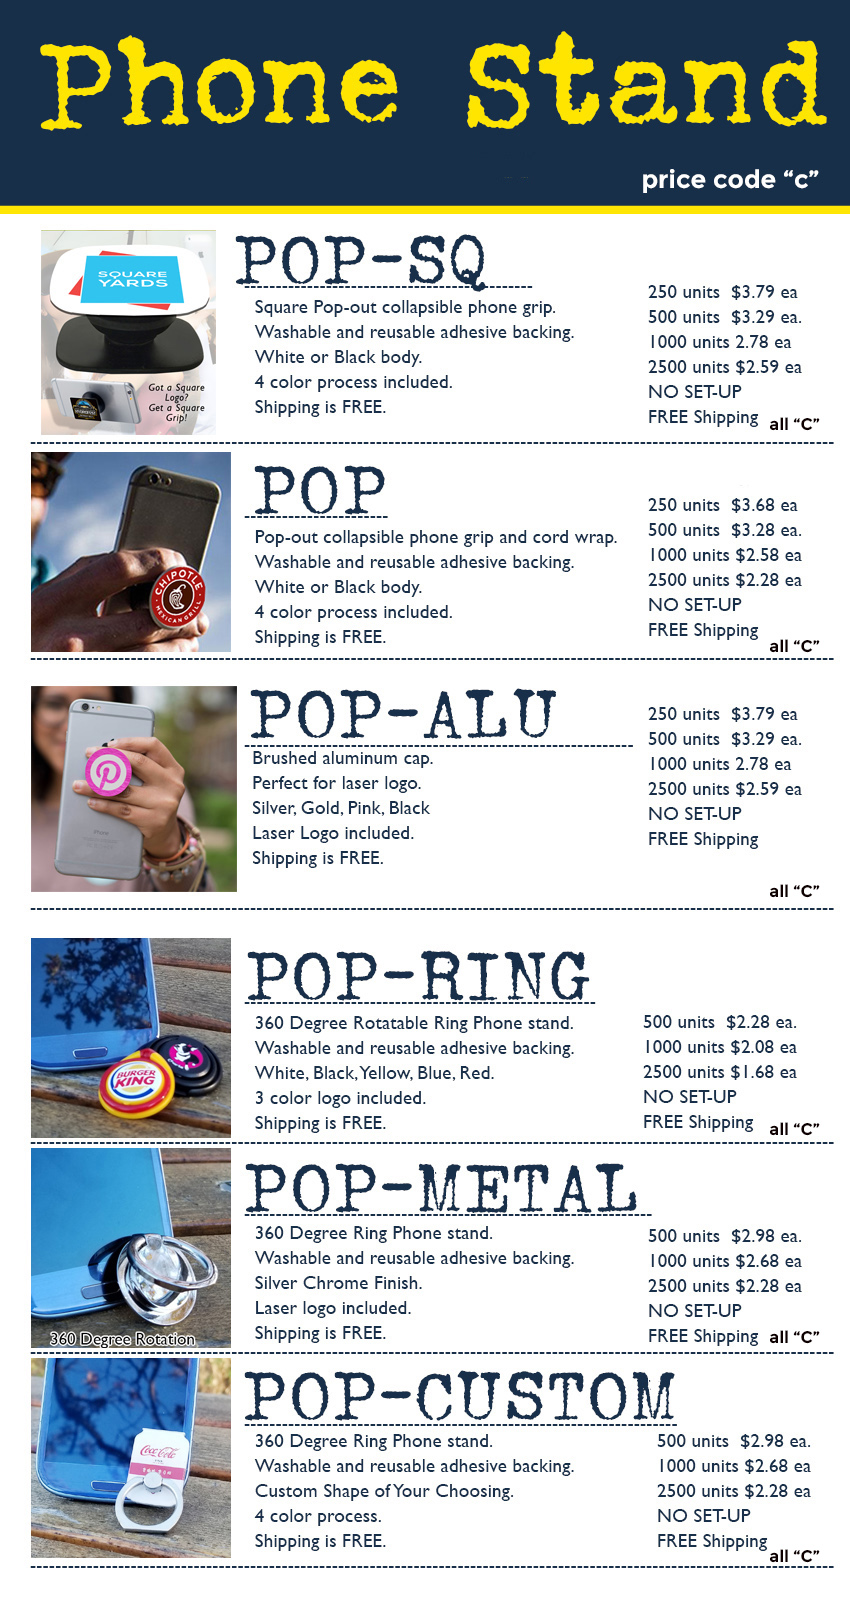 coded pop phone stand prices without c